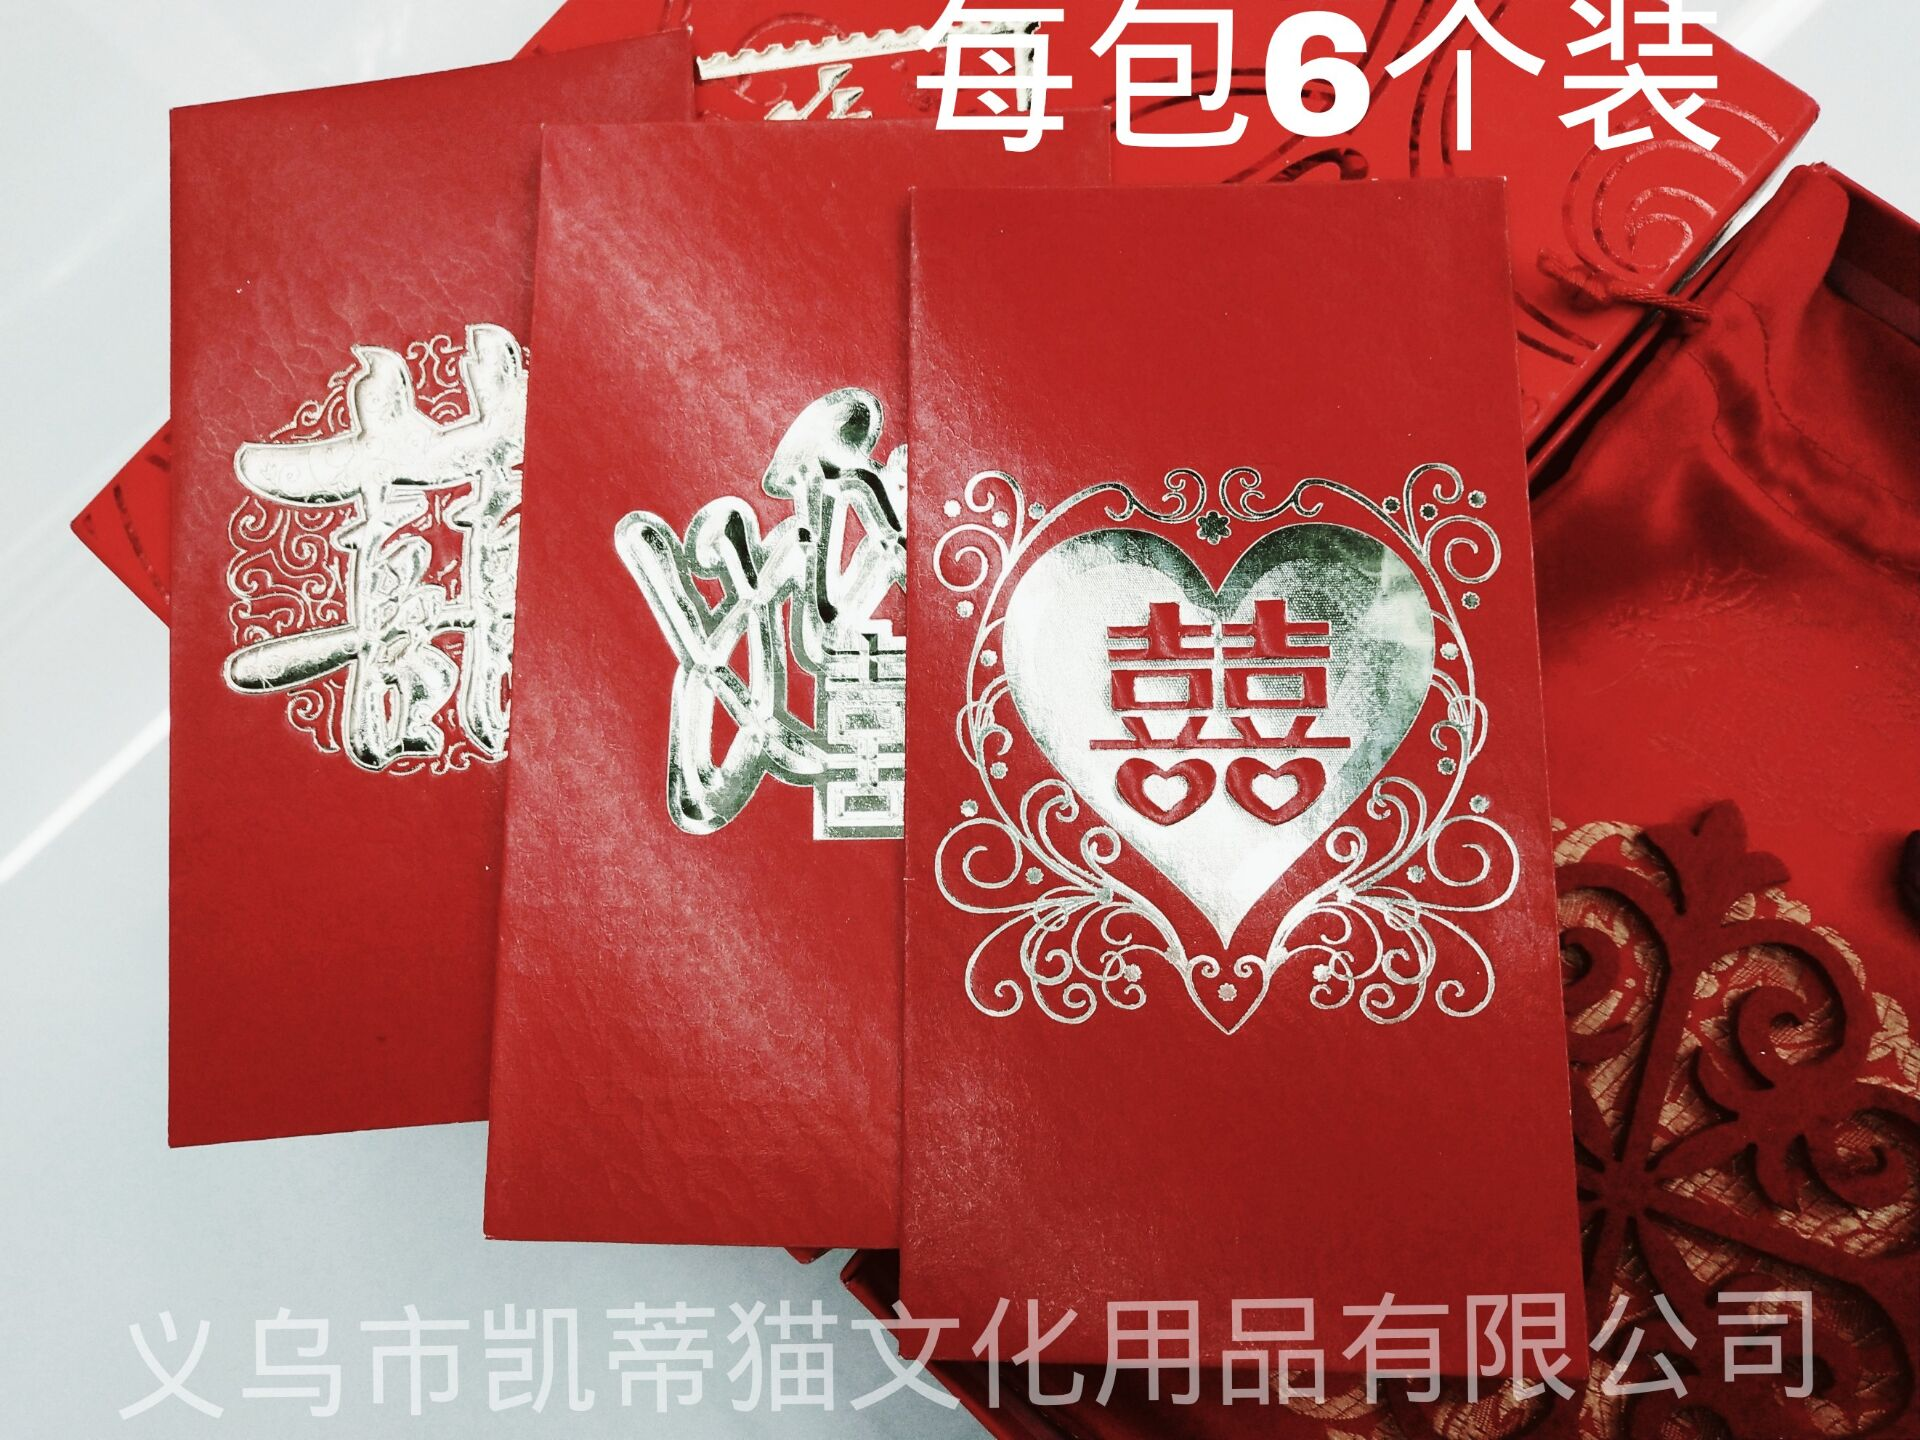 Supply The New wedding red envelopes for 18 years-